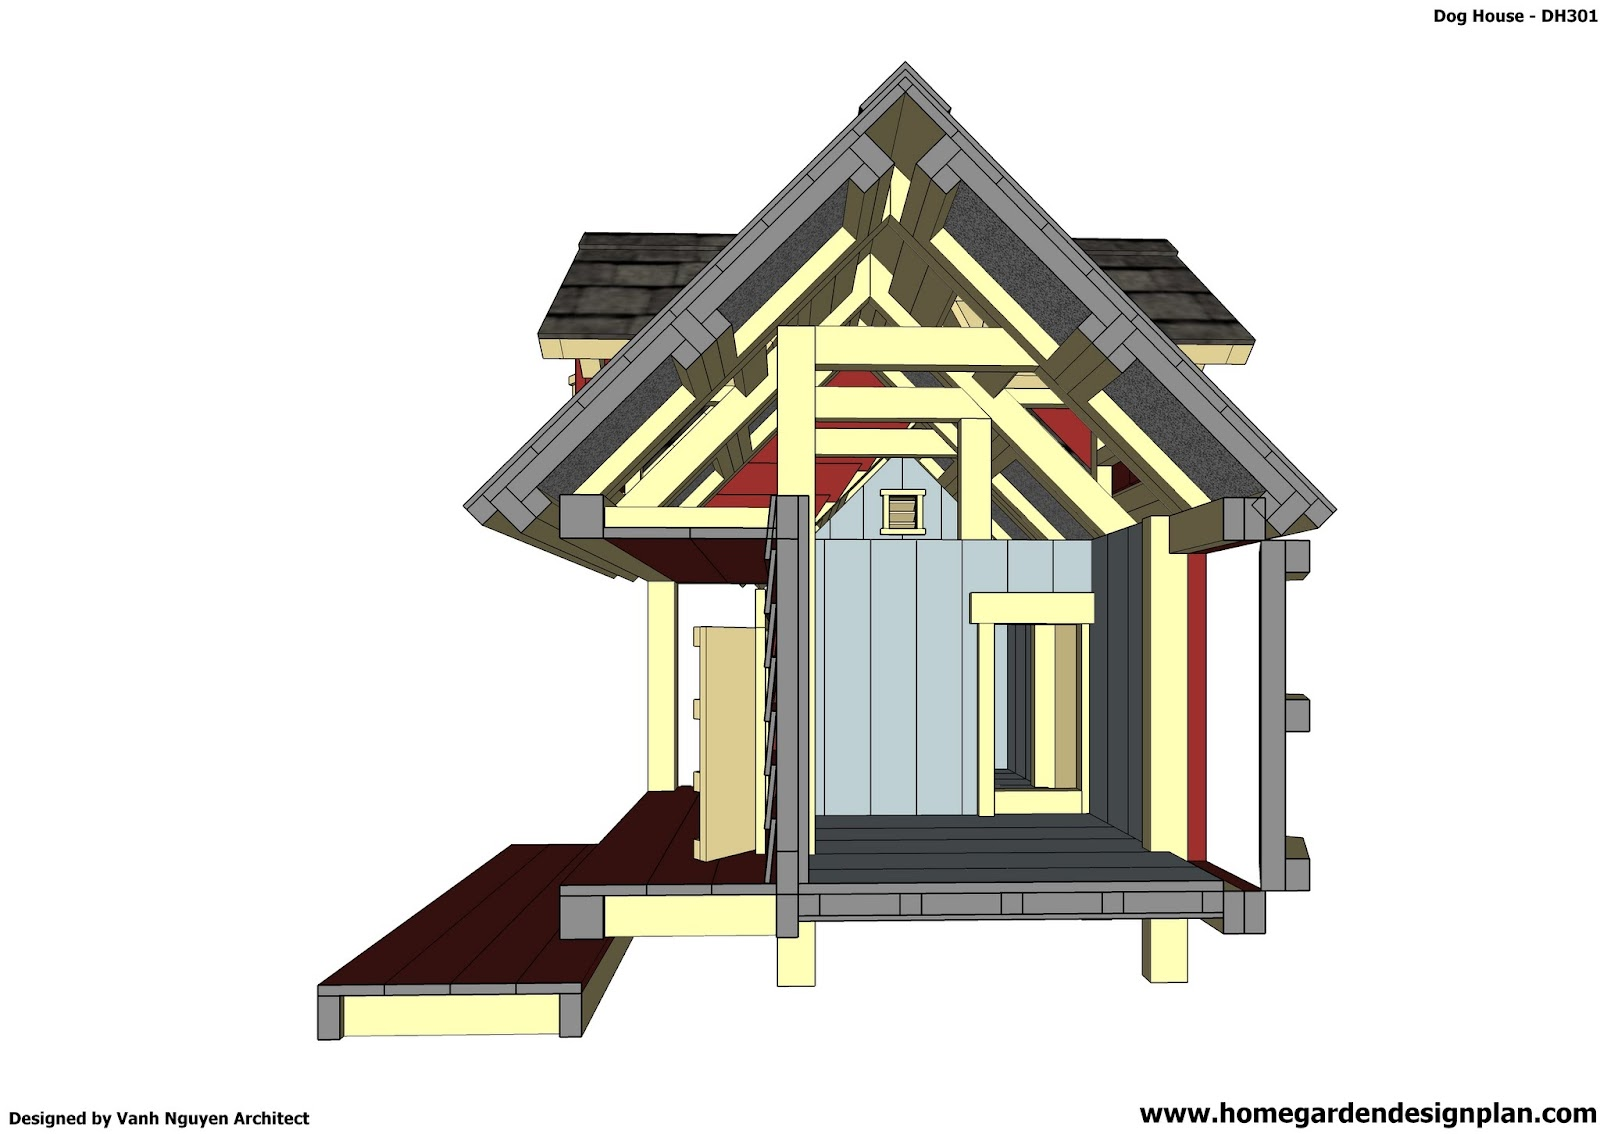 Dog house design pdf for Insulated dog house plans pdf